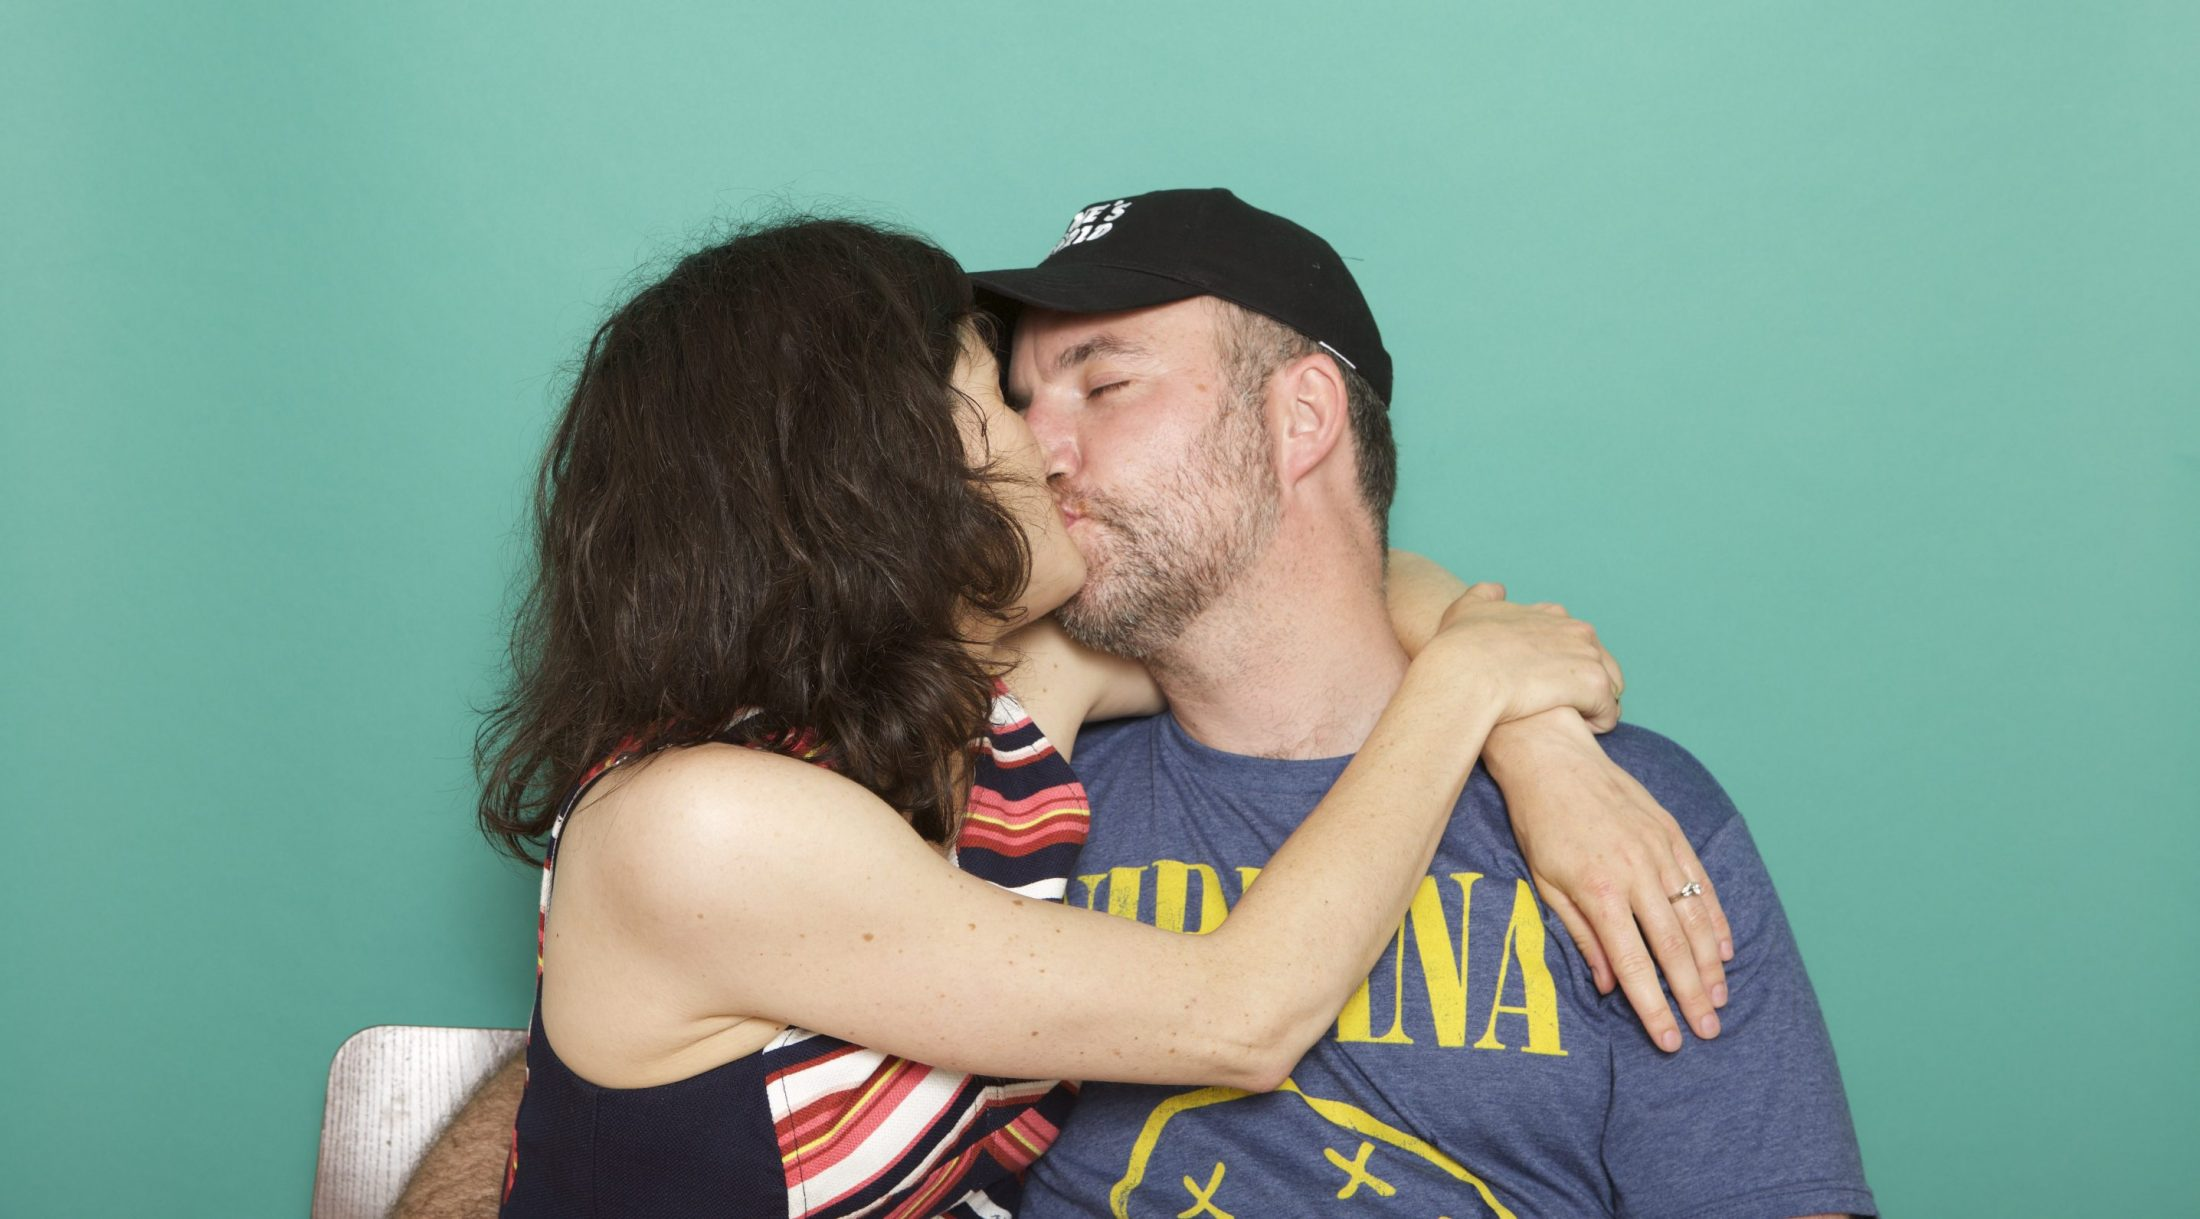 Shawn and Marjorie Brimley kissing